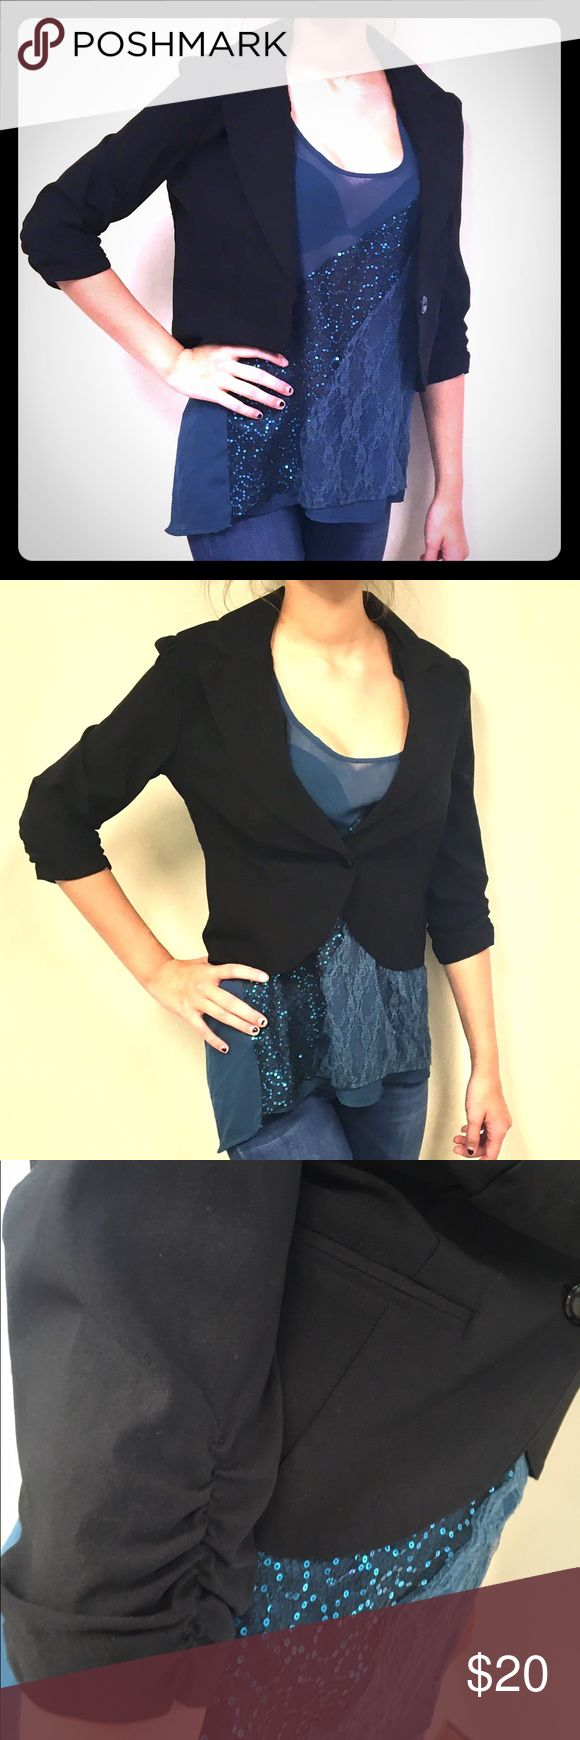 """Short Sexy Fun and Fitted Black Blazer This isn't your typical business jacket, but could definitely do the job if you needed it to. It's shorter, fitted to your waist line with ruching noted on the shorter 3 quarter length sleeves and accent buttons on the back. Also has 2 fake pockets on the front for decoration. Model is 5'9"""" only jacket pictured is for sell here, shirt is also for sell for a great bundle! Extra button sewn on inside if ever needed. B•Wear Jackets & Coats Blazers"""